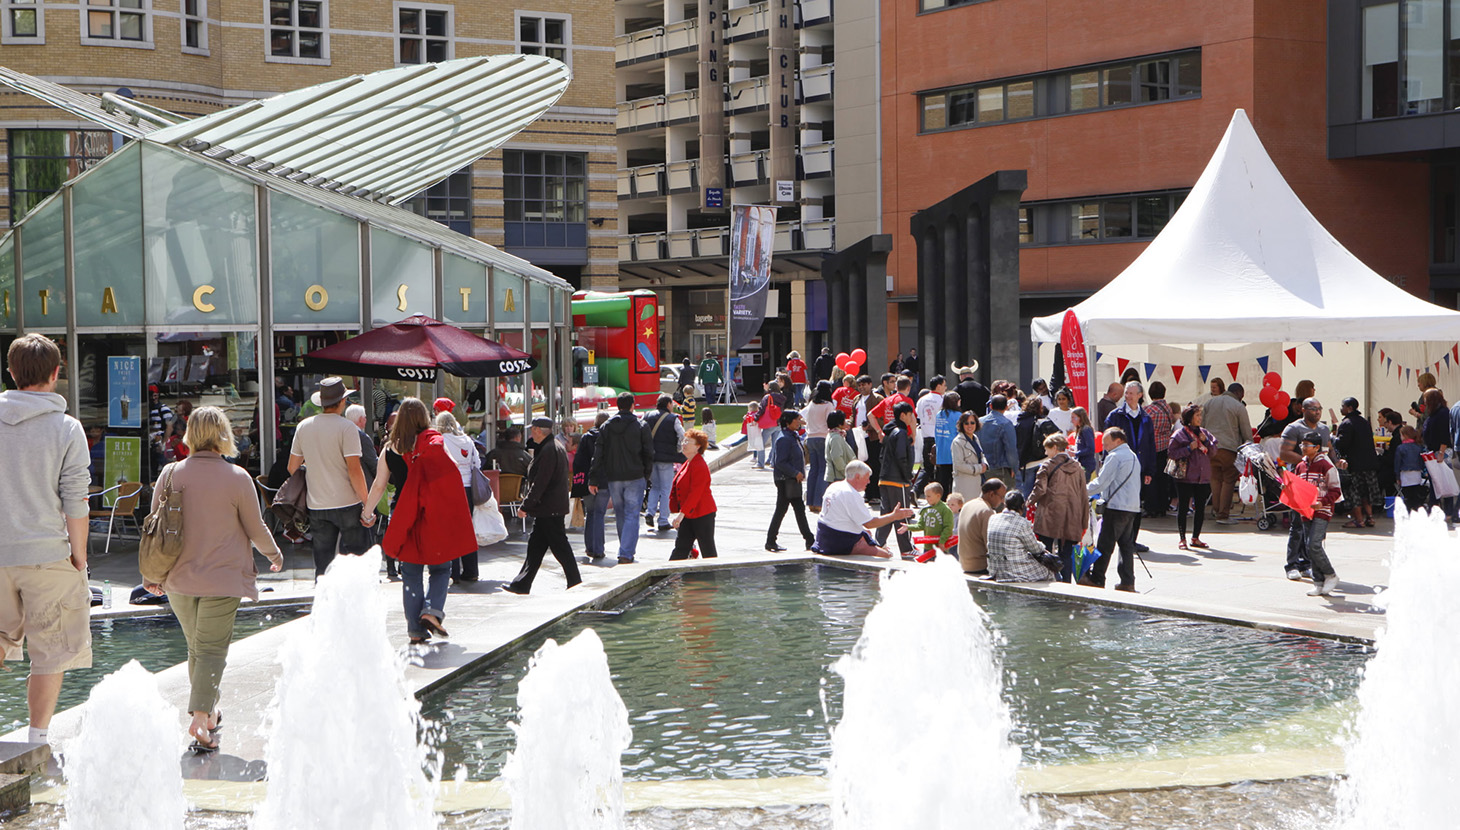 brindley-place-marketing-birmingham-1460-2